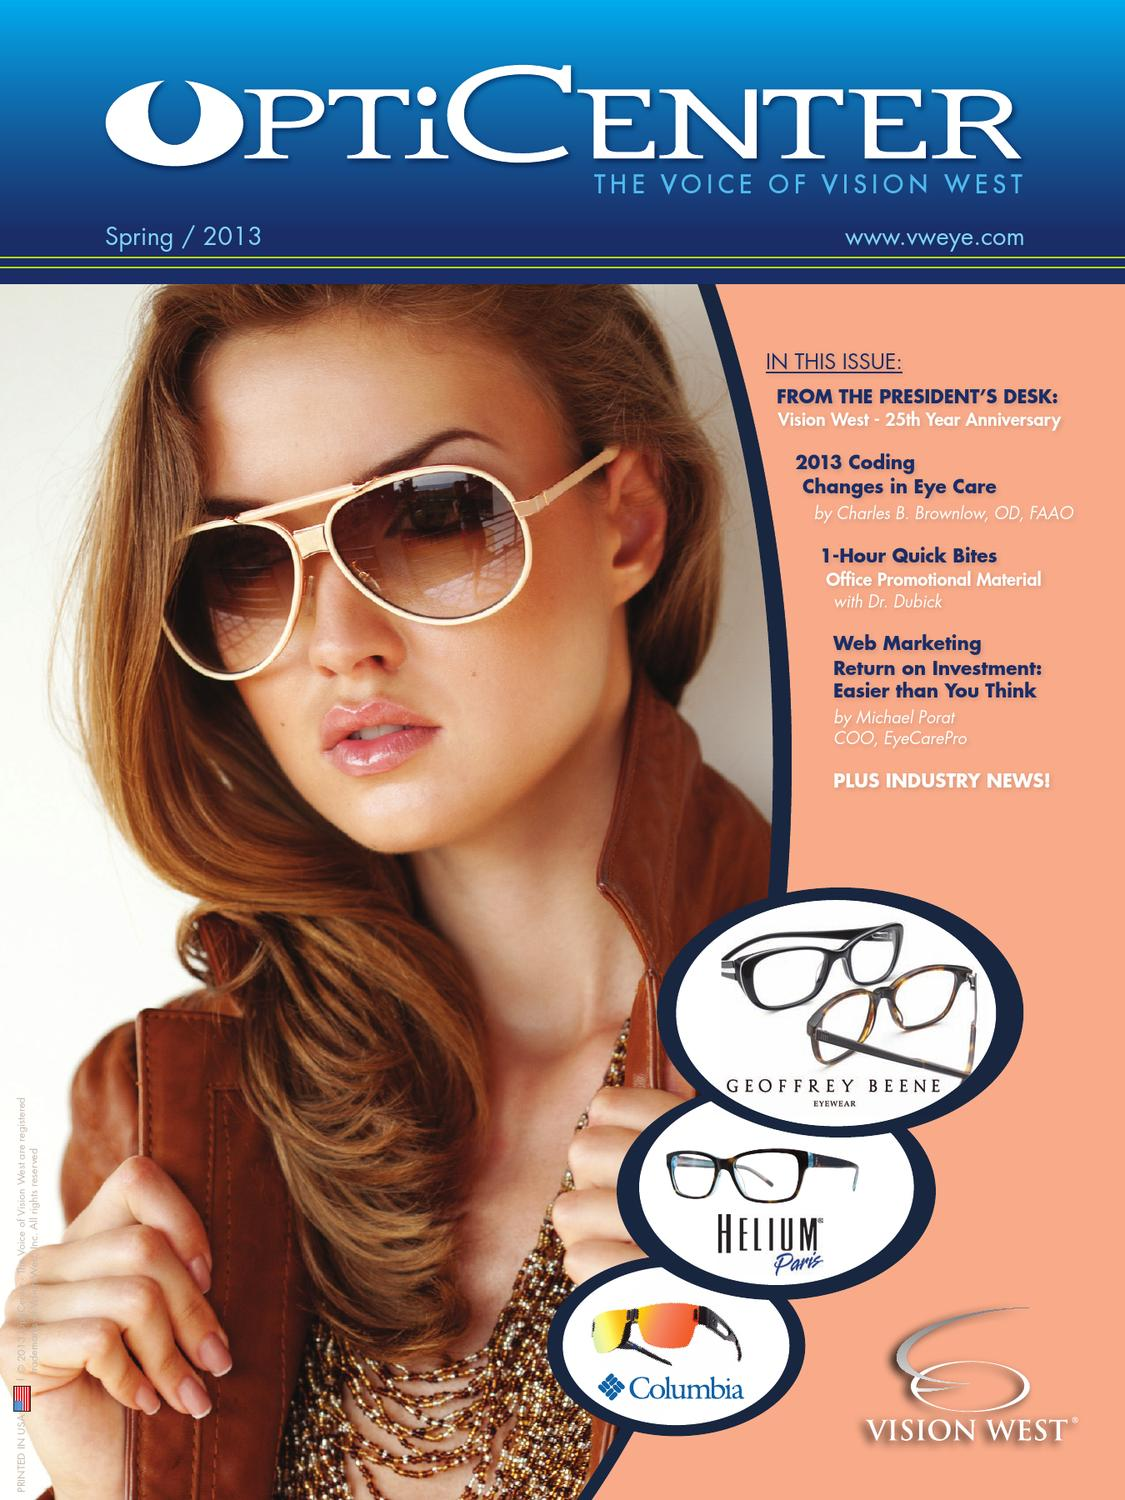 89df3359989 OptiCenter - The Voice of Vision West - Spring 2013 by Vision West ...